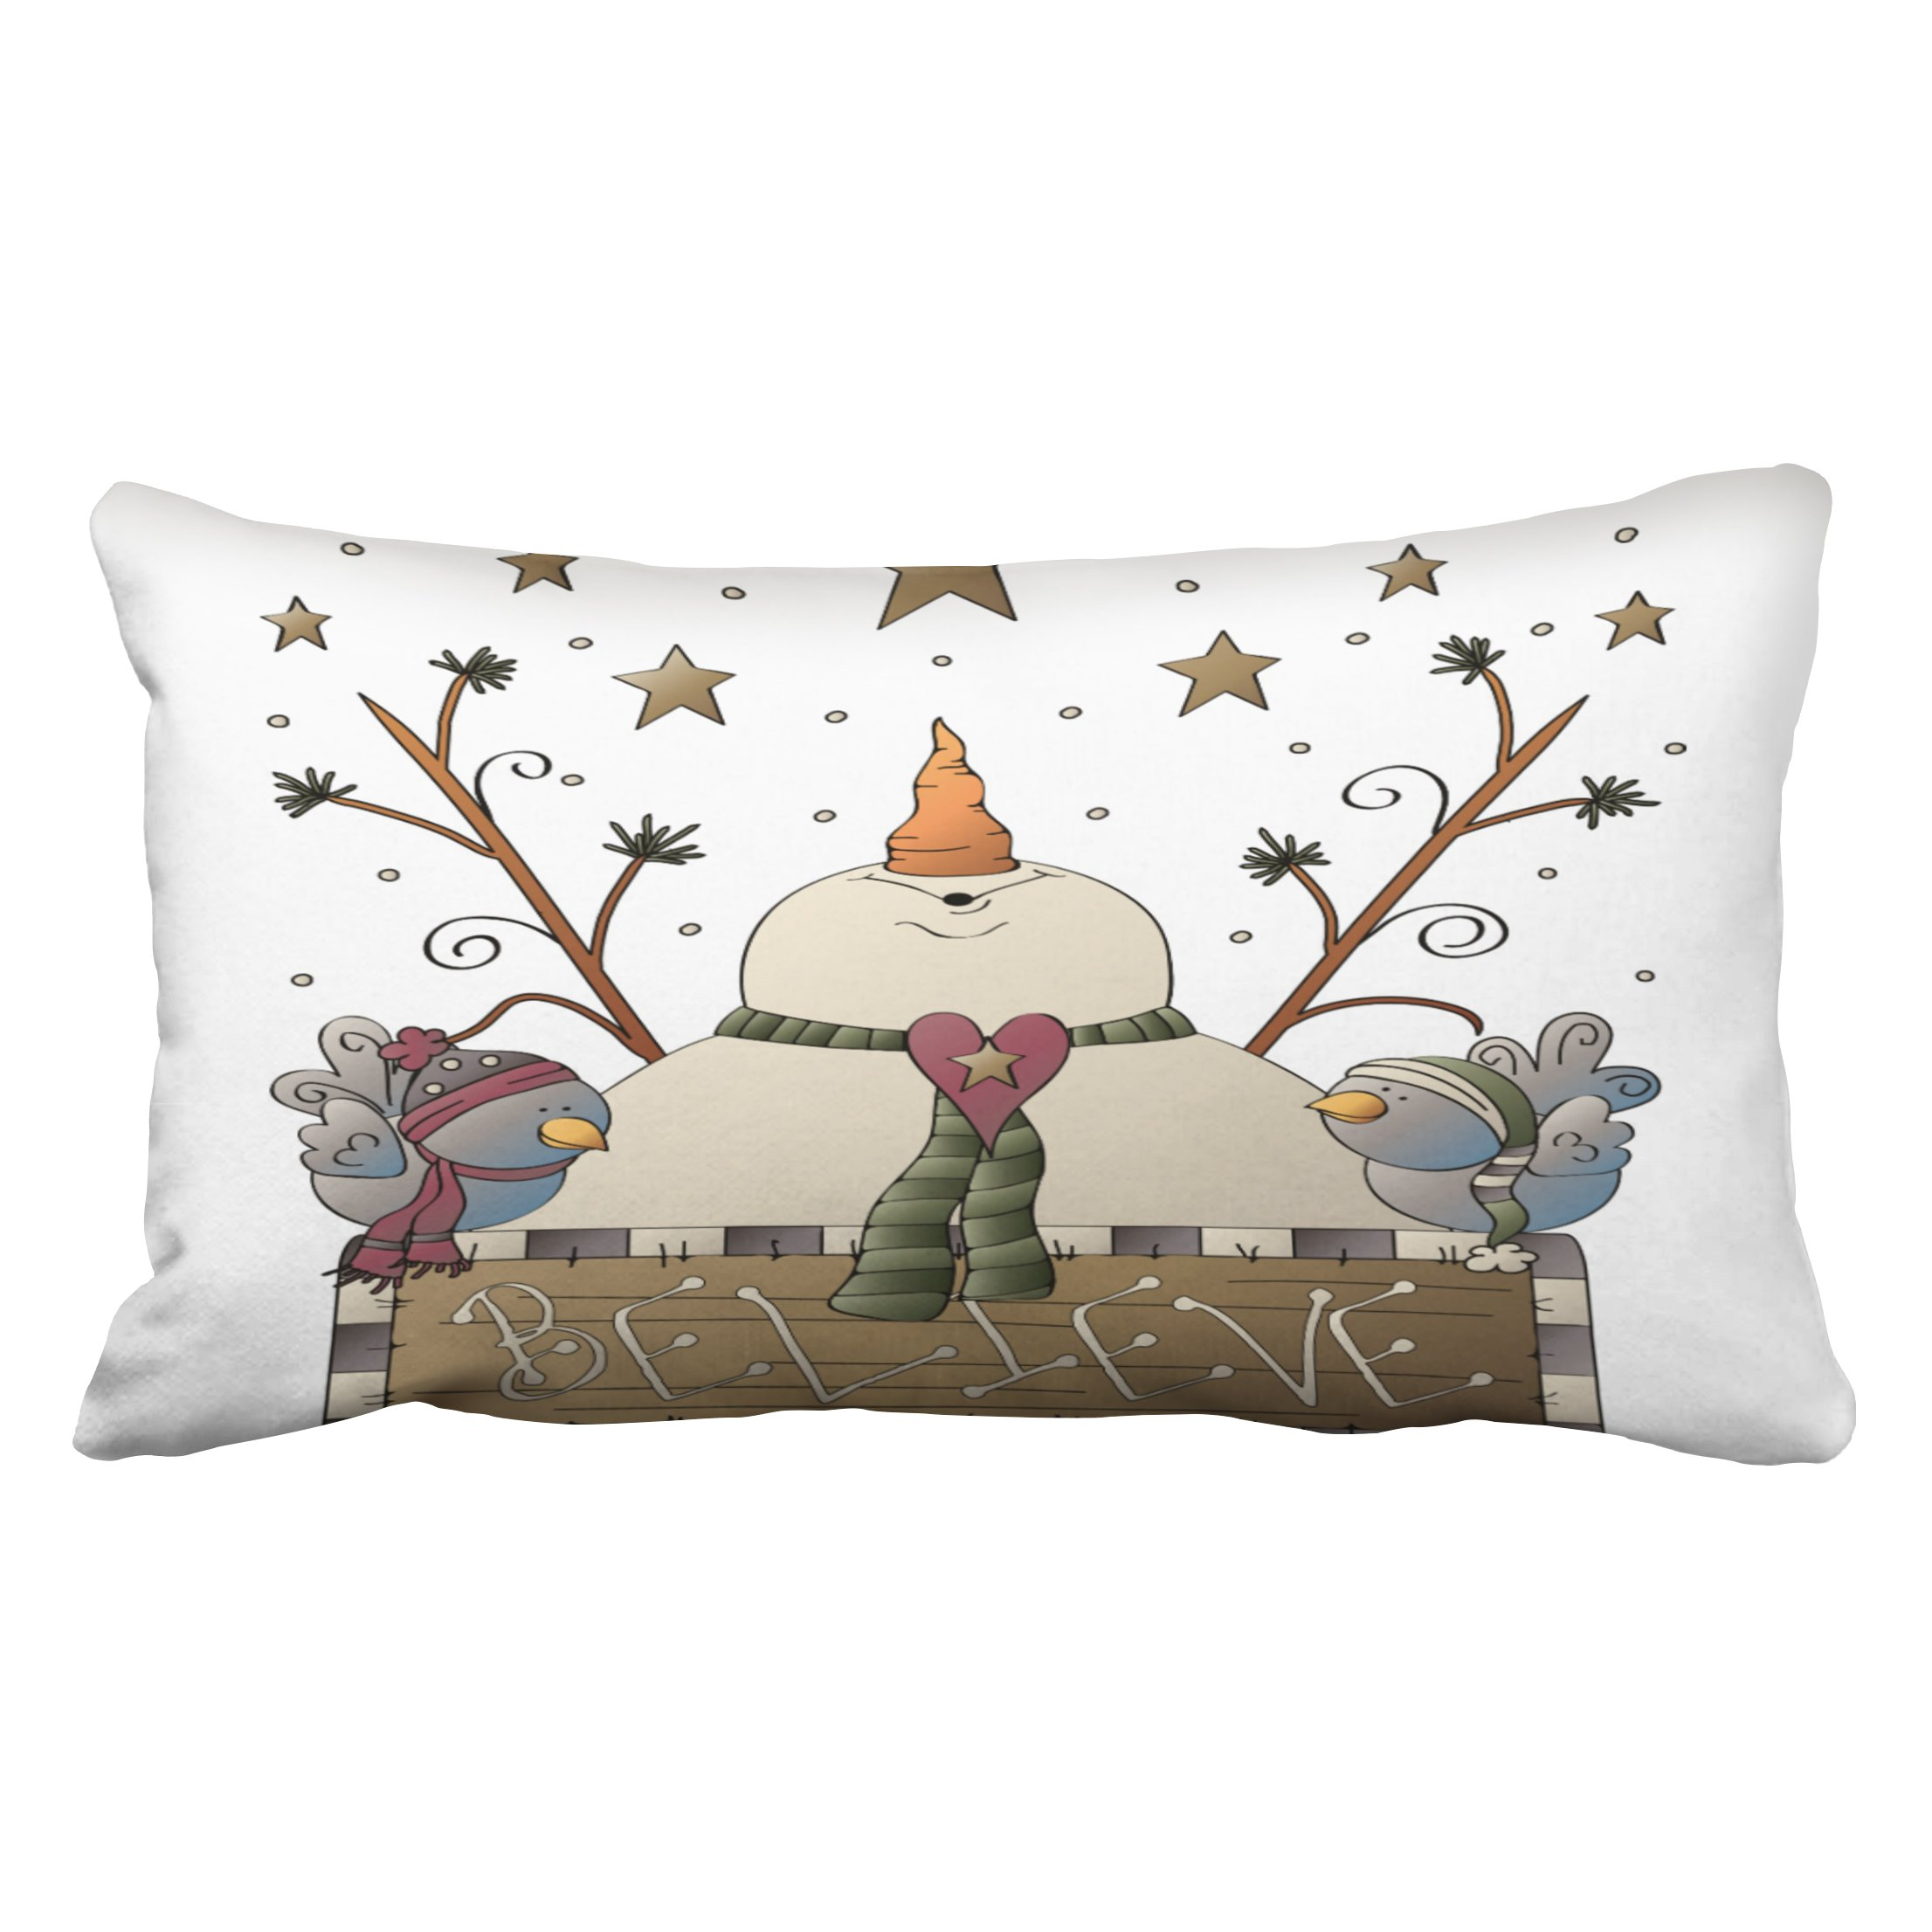 Emvency Pillowcases Christmas New Year Dec Throw Lumbar Pillow Case Snowman Snowflake Country Winter Primitive Bird Decorative Throw Pillow Cover Case Protectors King 20x36 Inches One Side Sofa Couch